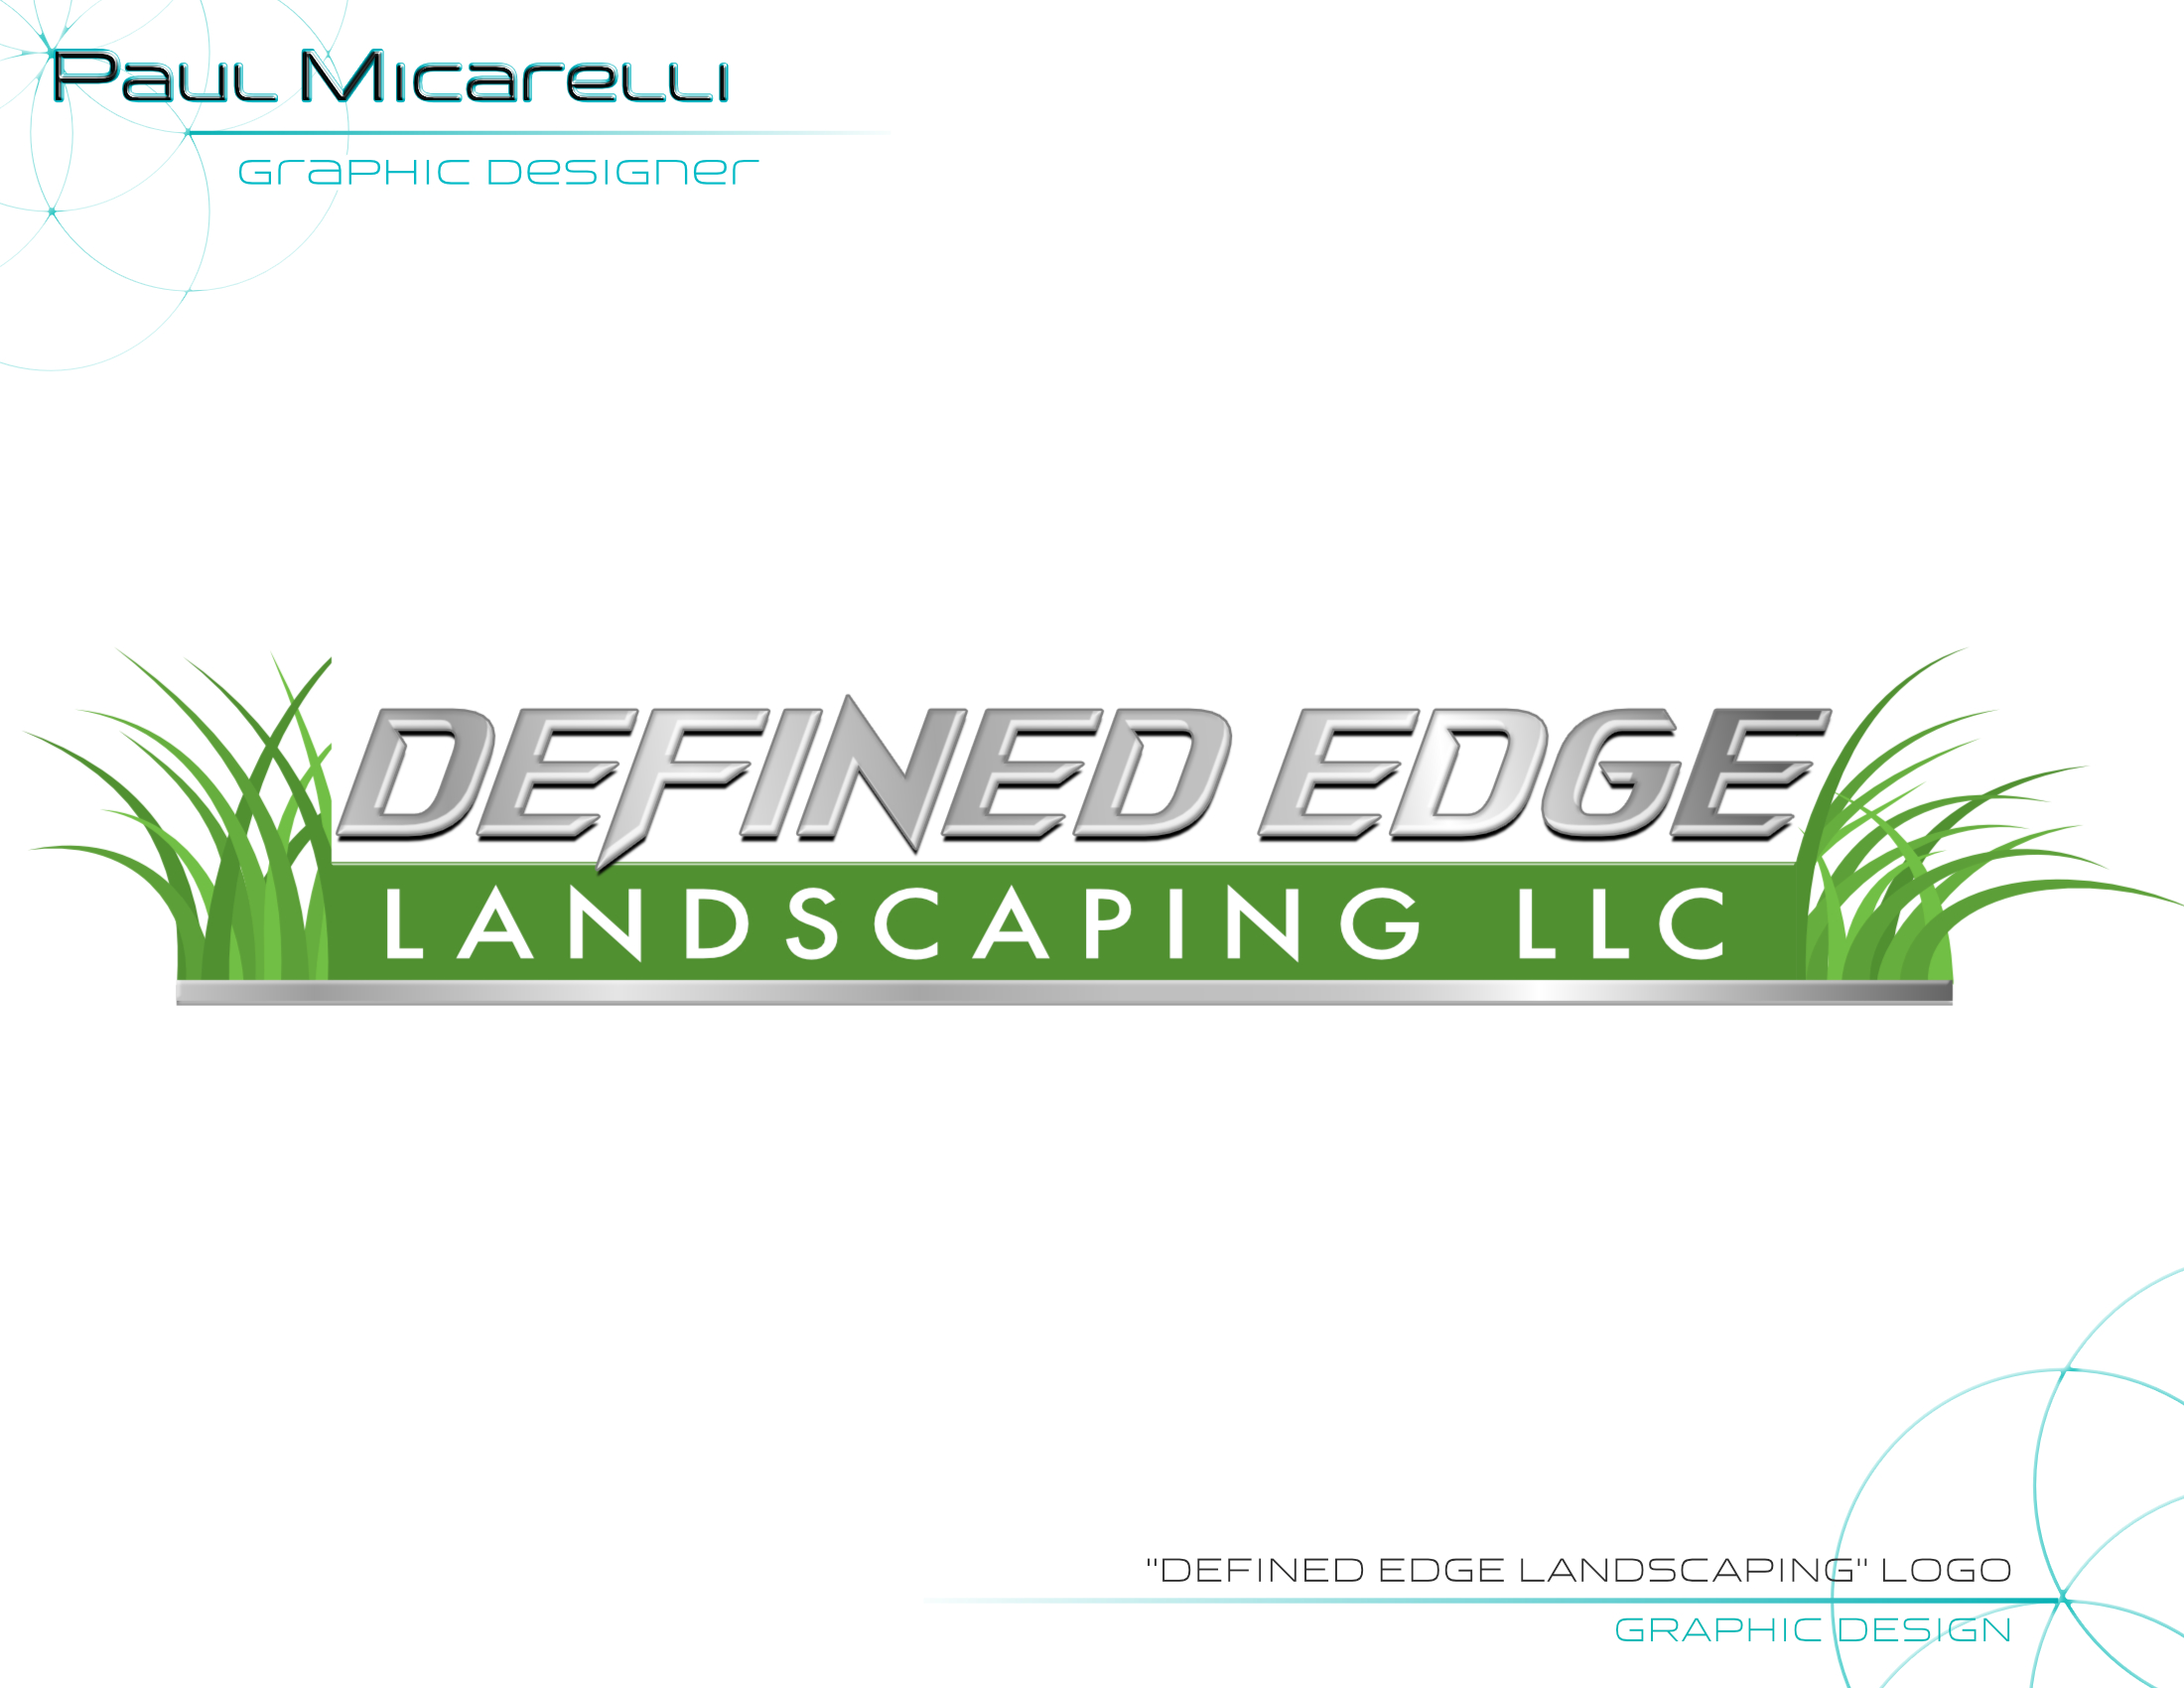 Paul-Micarelli-Defined Edge Landscaping-